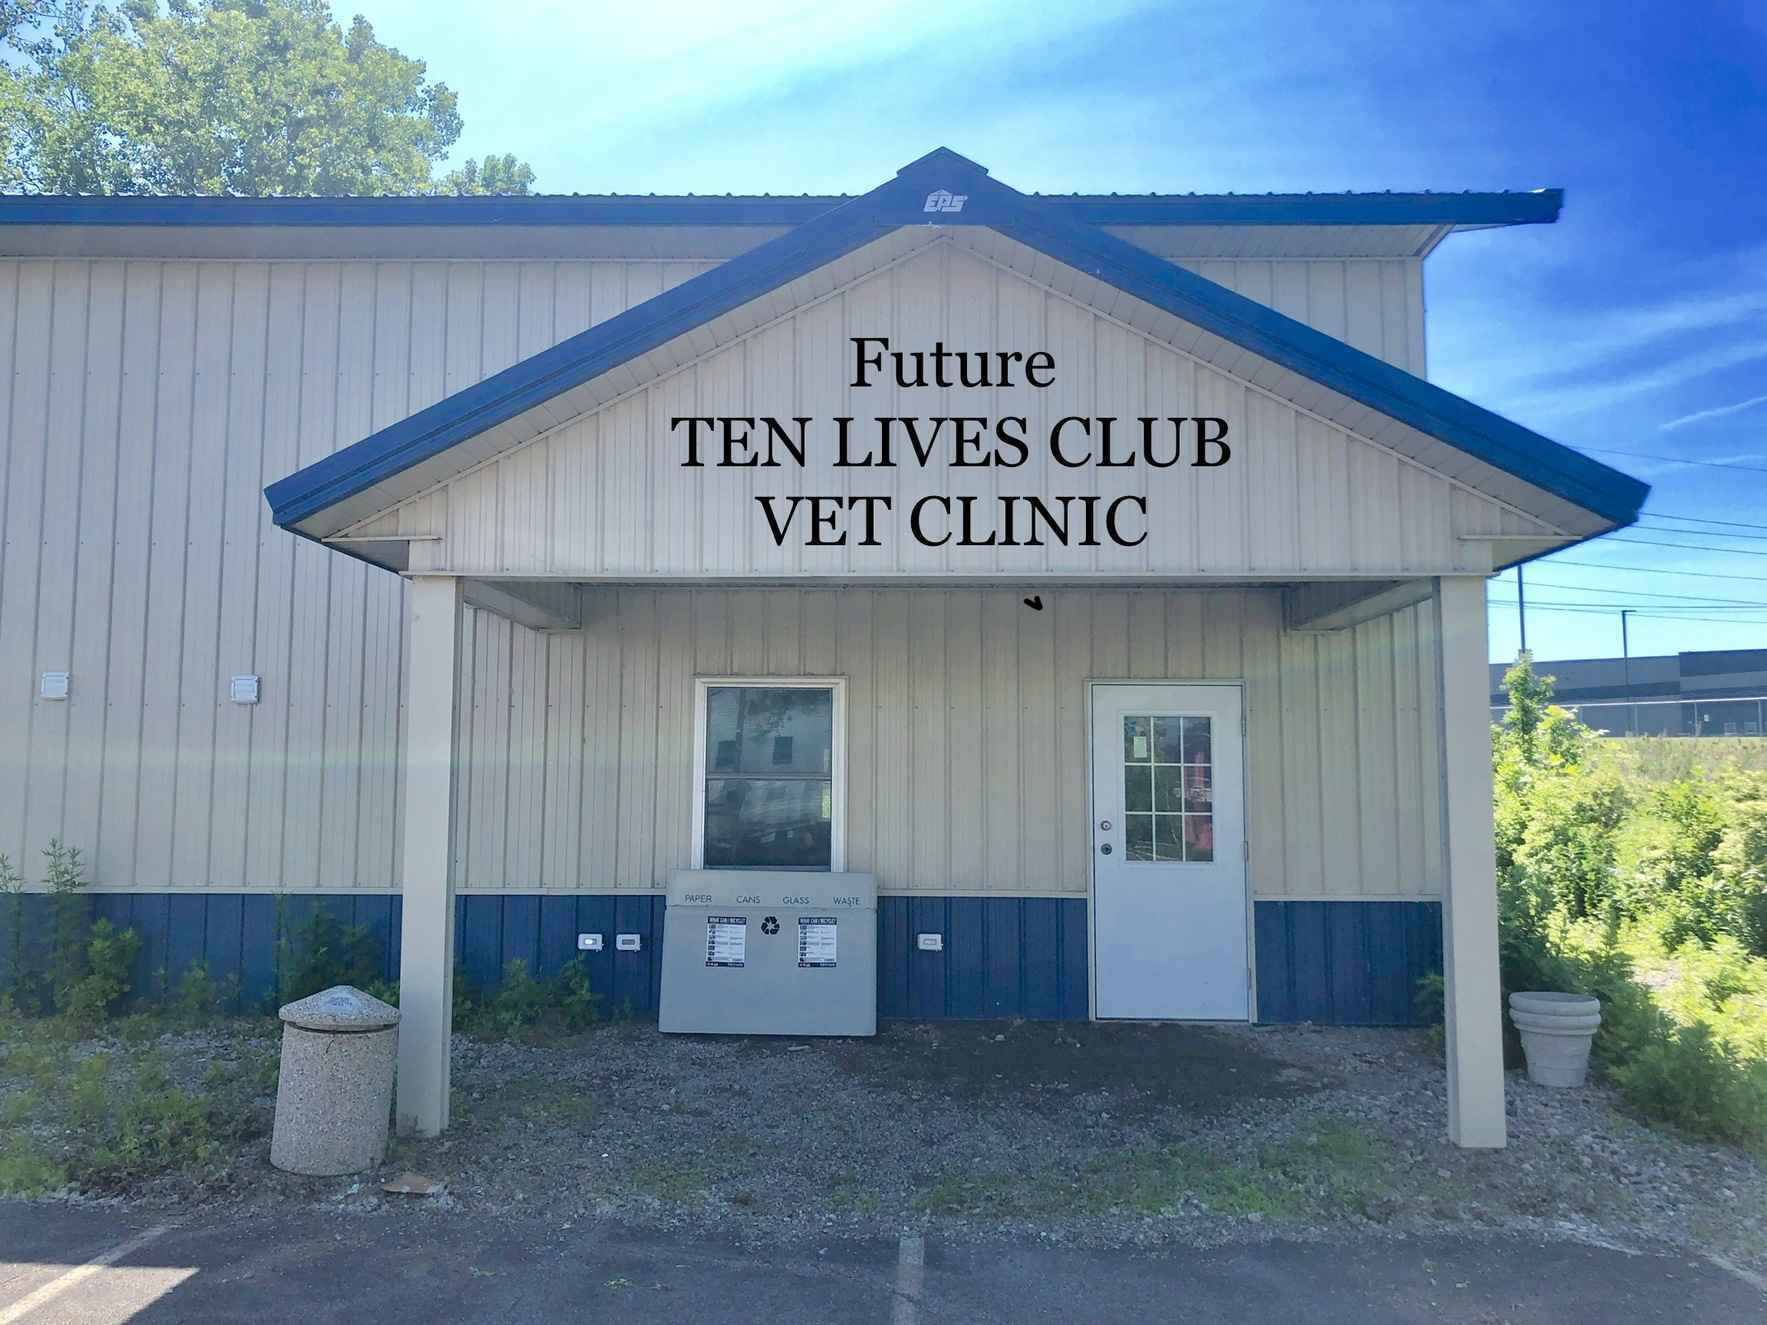 Donate today to Help Ten Lives Club expand the Veterinarian Clinic image